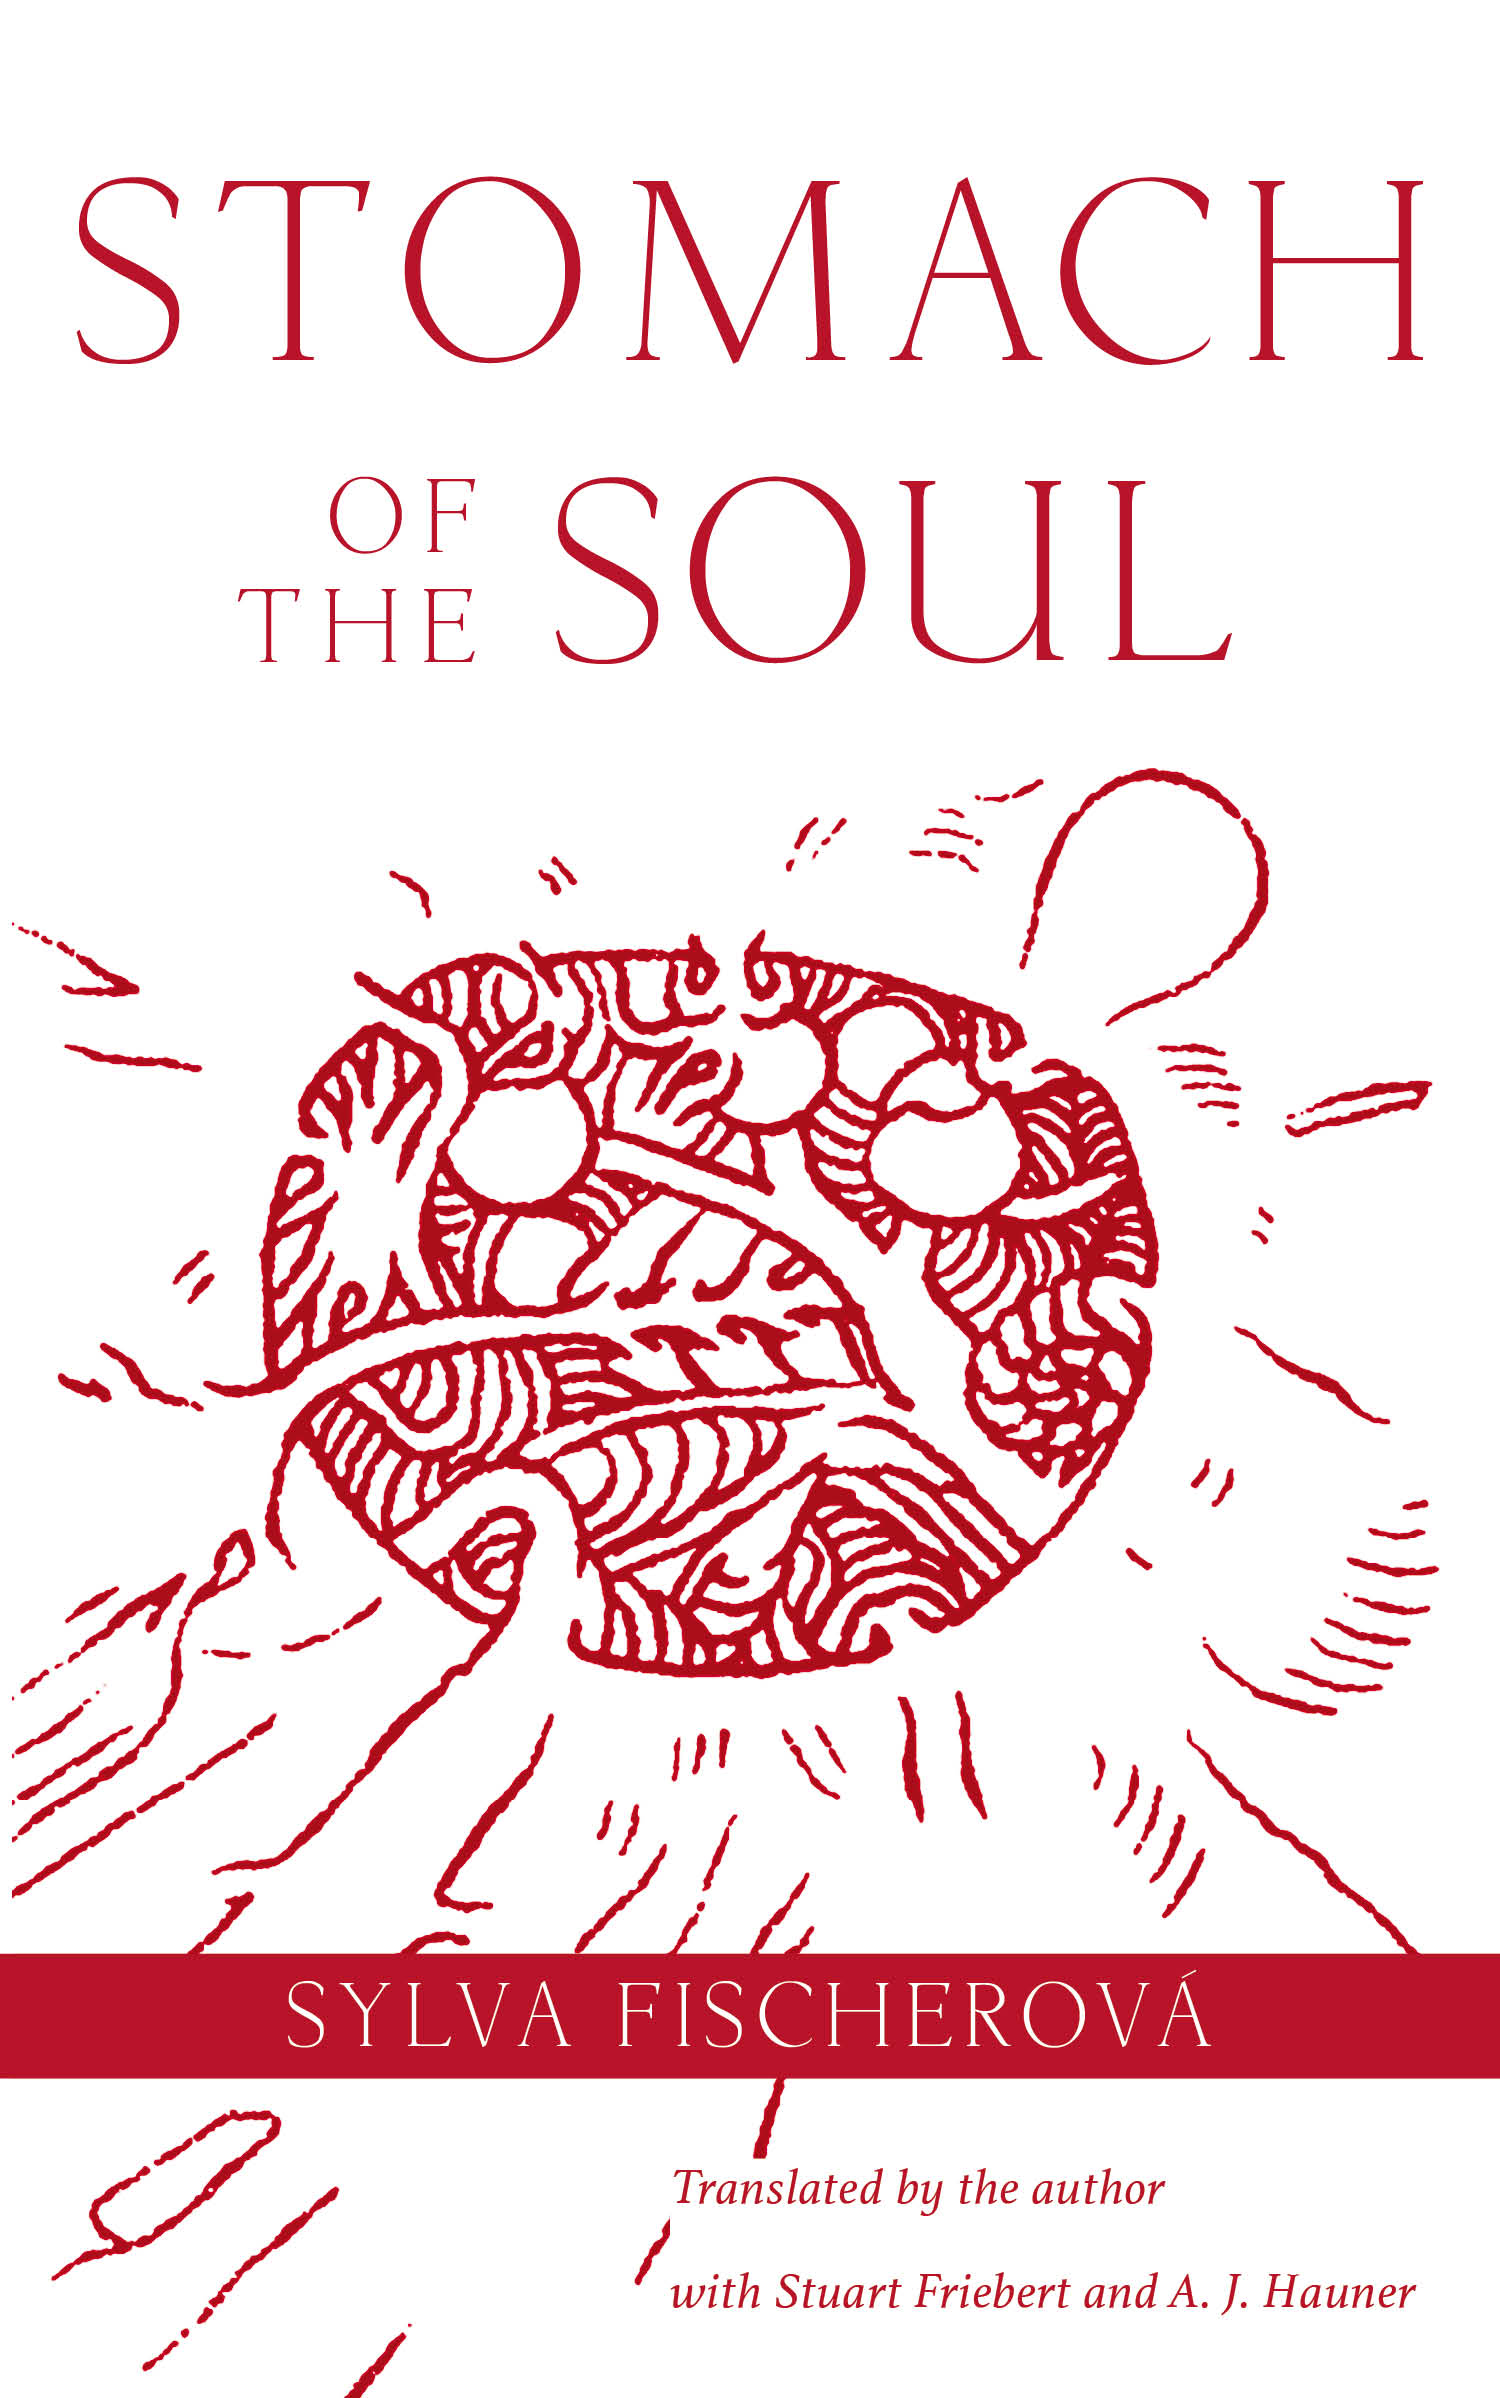 Stomach of the Soul